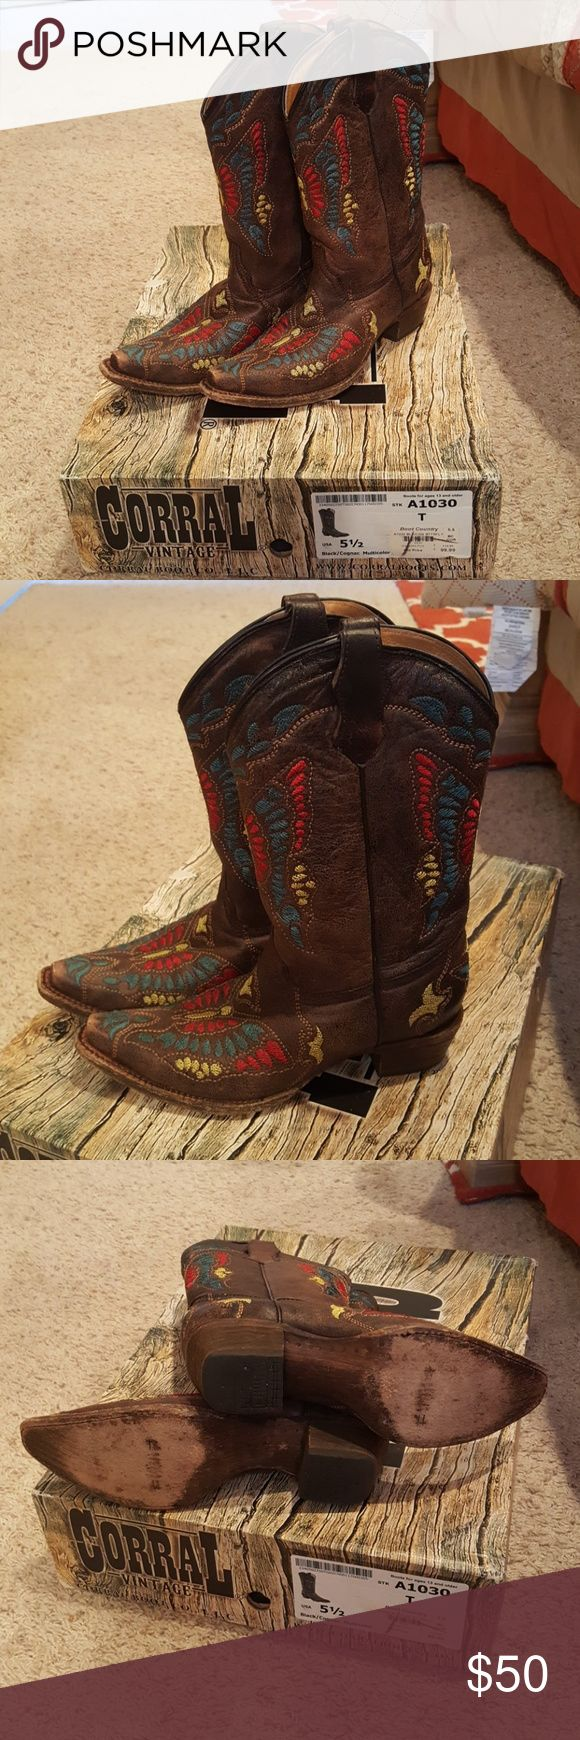 Corral Vintage Boots A pair of Corral Vintage dark brown butterfly design cowgirl boots..size 5 1/2 ...very good condition Corral Vintage Shoes Heeled Boots